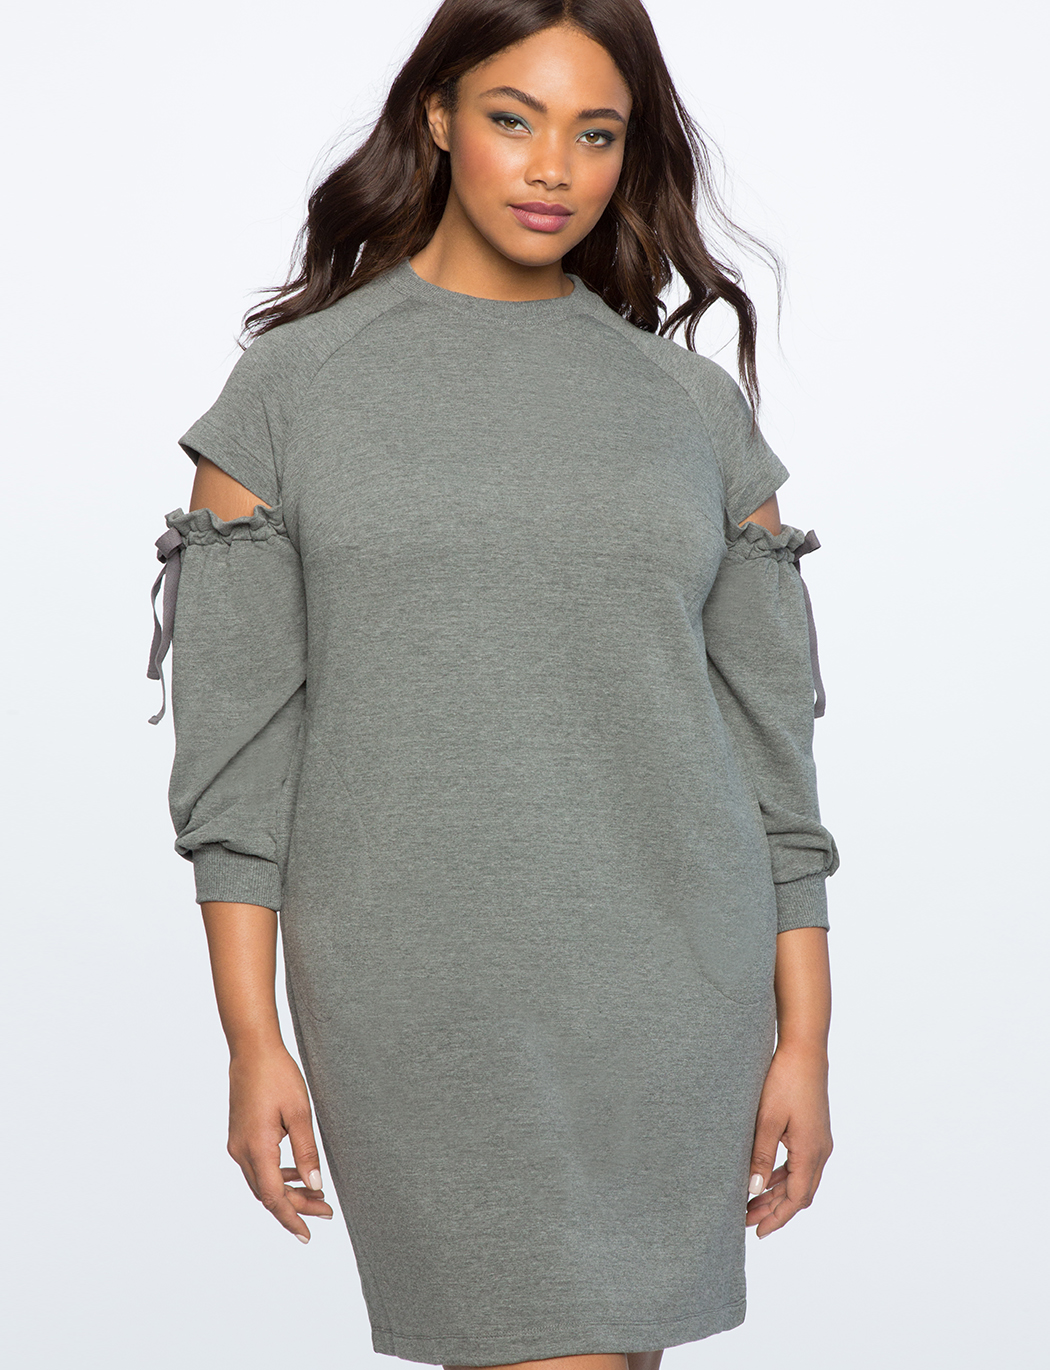 Cut Out Shoulder Sweatshirt Dress | Women\'s Plus Size Dresses ...